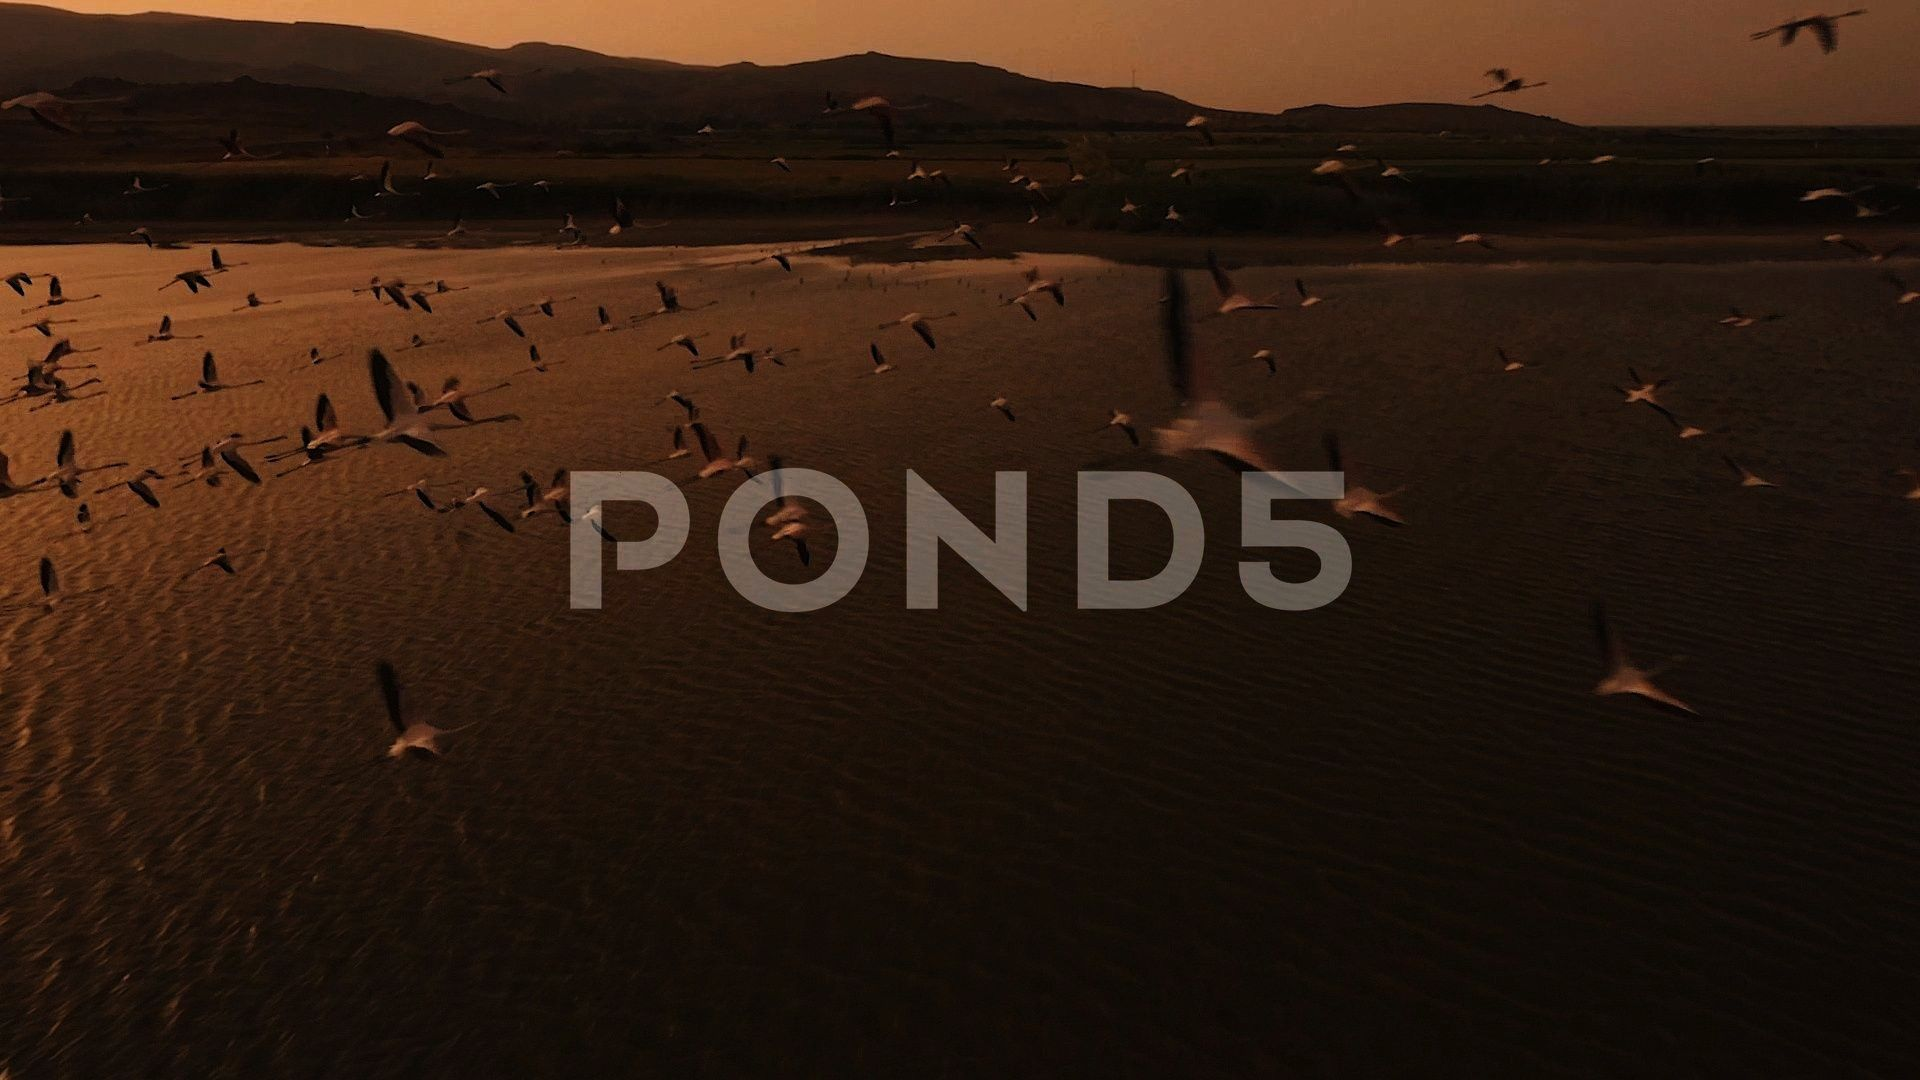 Drone Fly Through Stock Footage DroneSwarmFootageFlamingoFlamingo Swarm  Drone Fly Through Stock Footage DroneSwarmFootageFlamingo Graphic Design  Graphic Design Ideas...